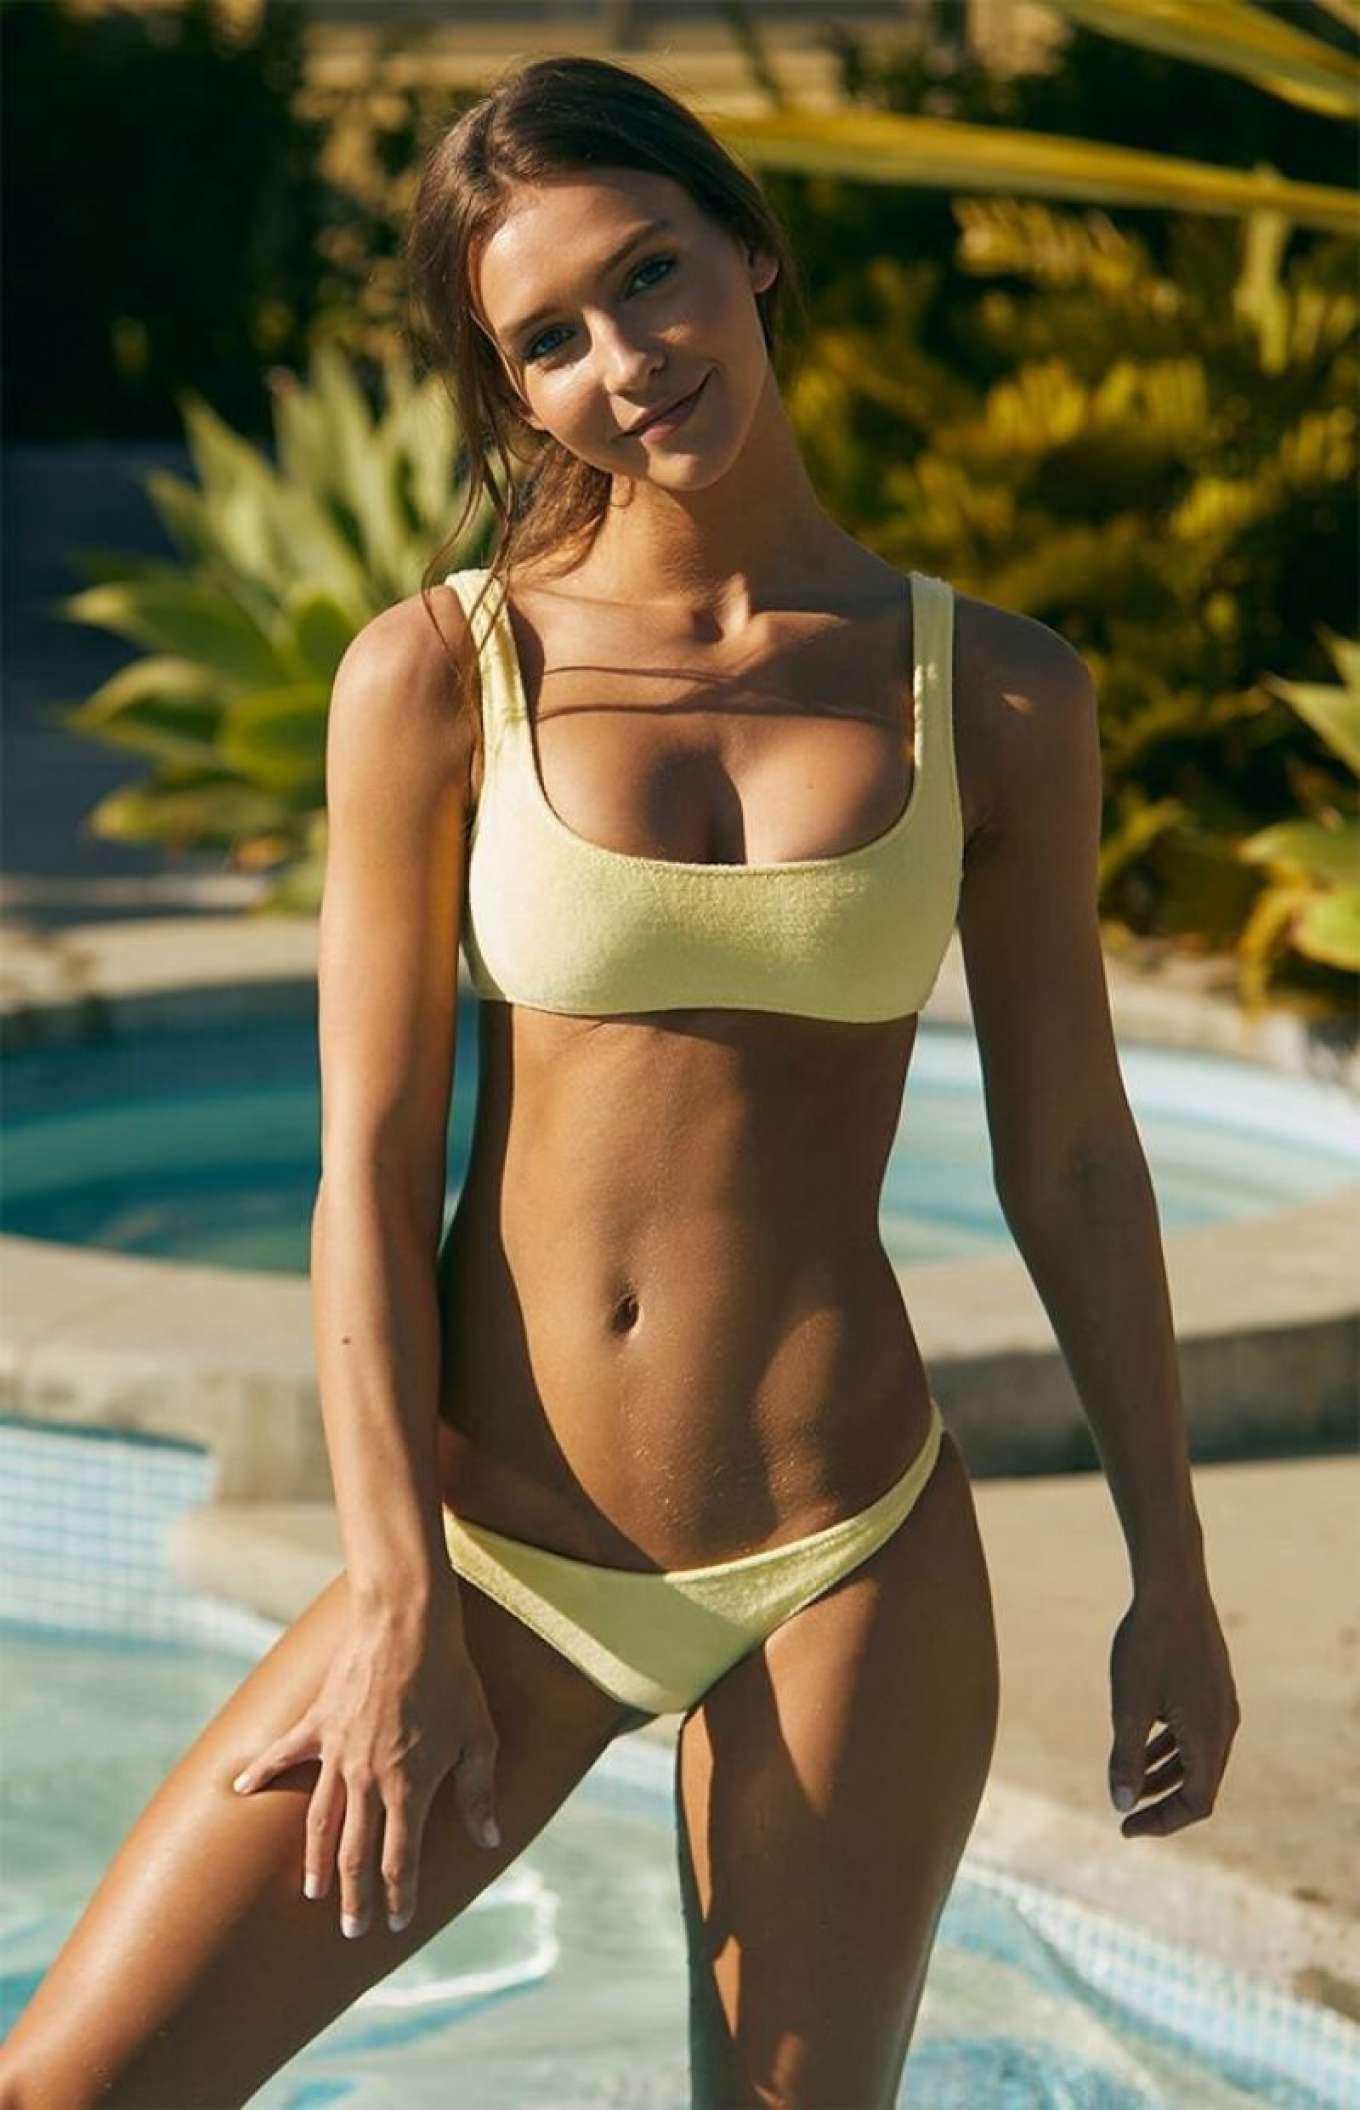 Rachel Cook - Photoshoot for Pacsun Swimwear 2019 collection